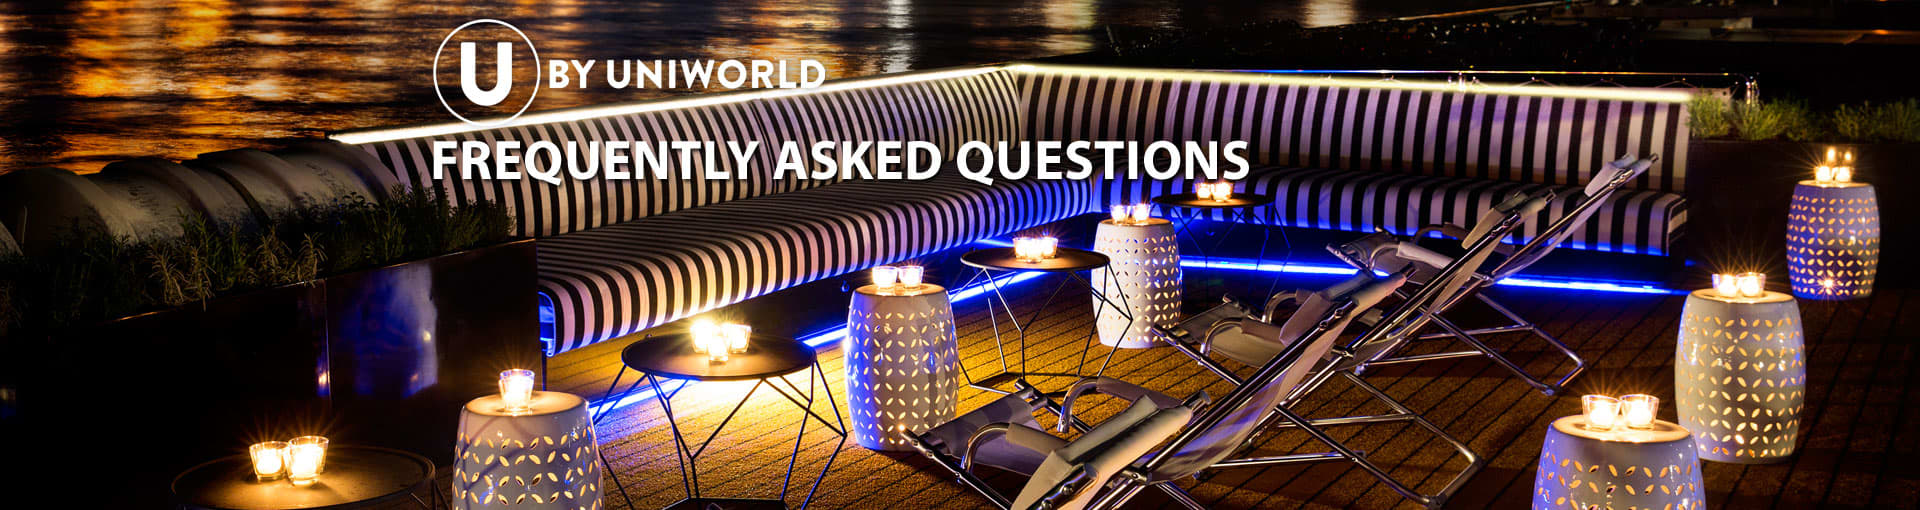 FAQ for U by Uniworld